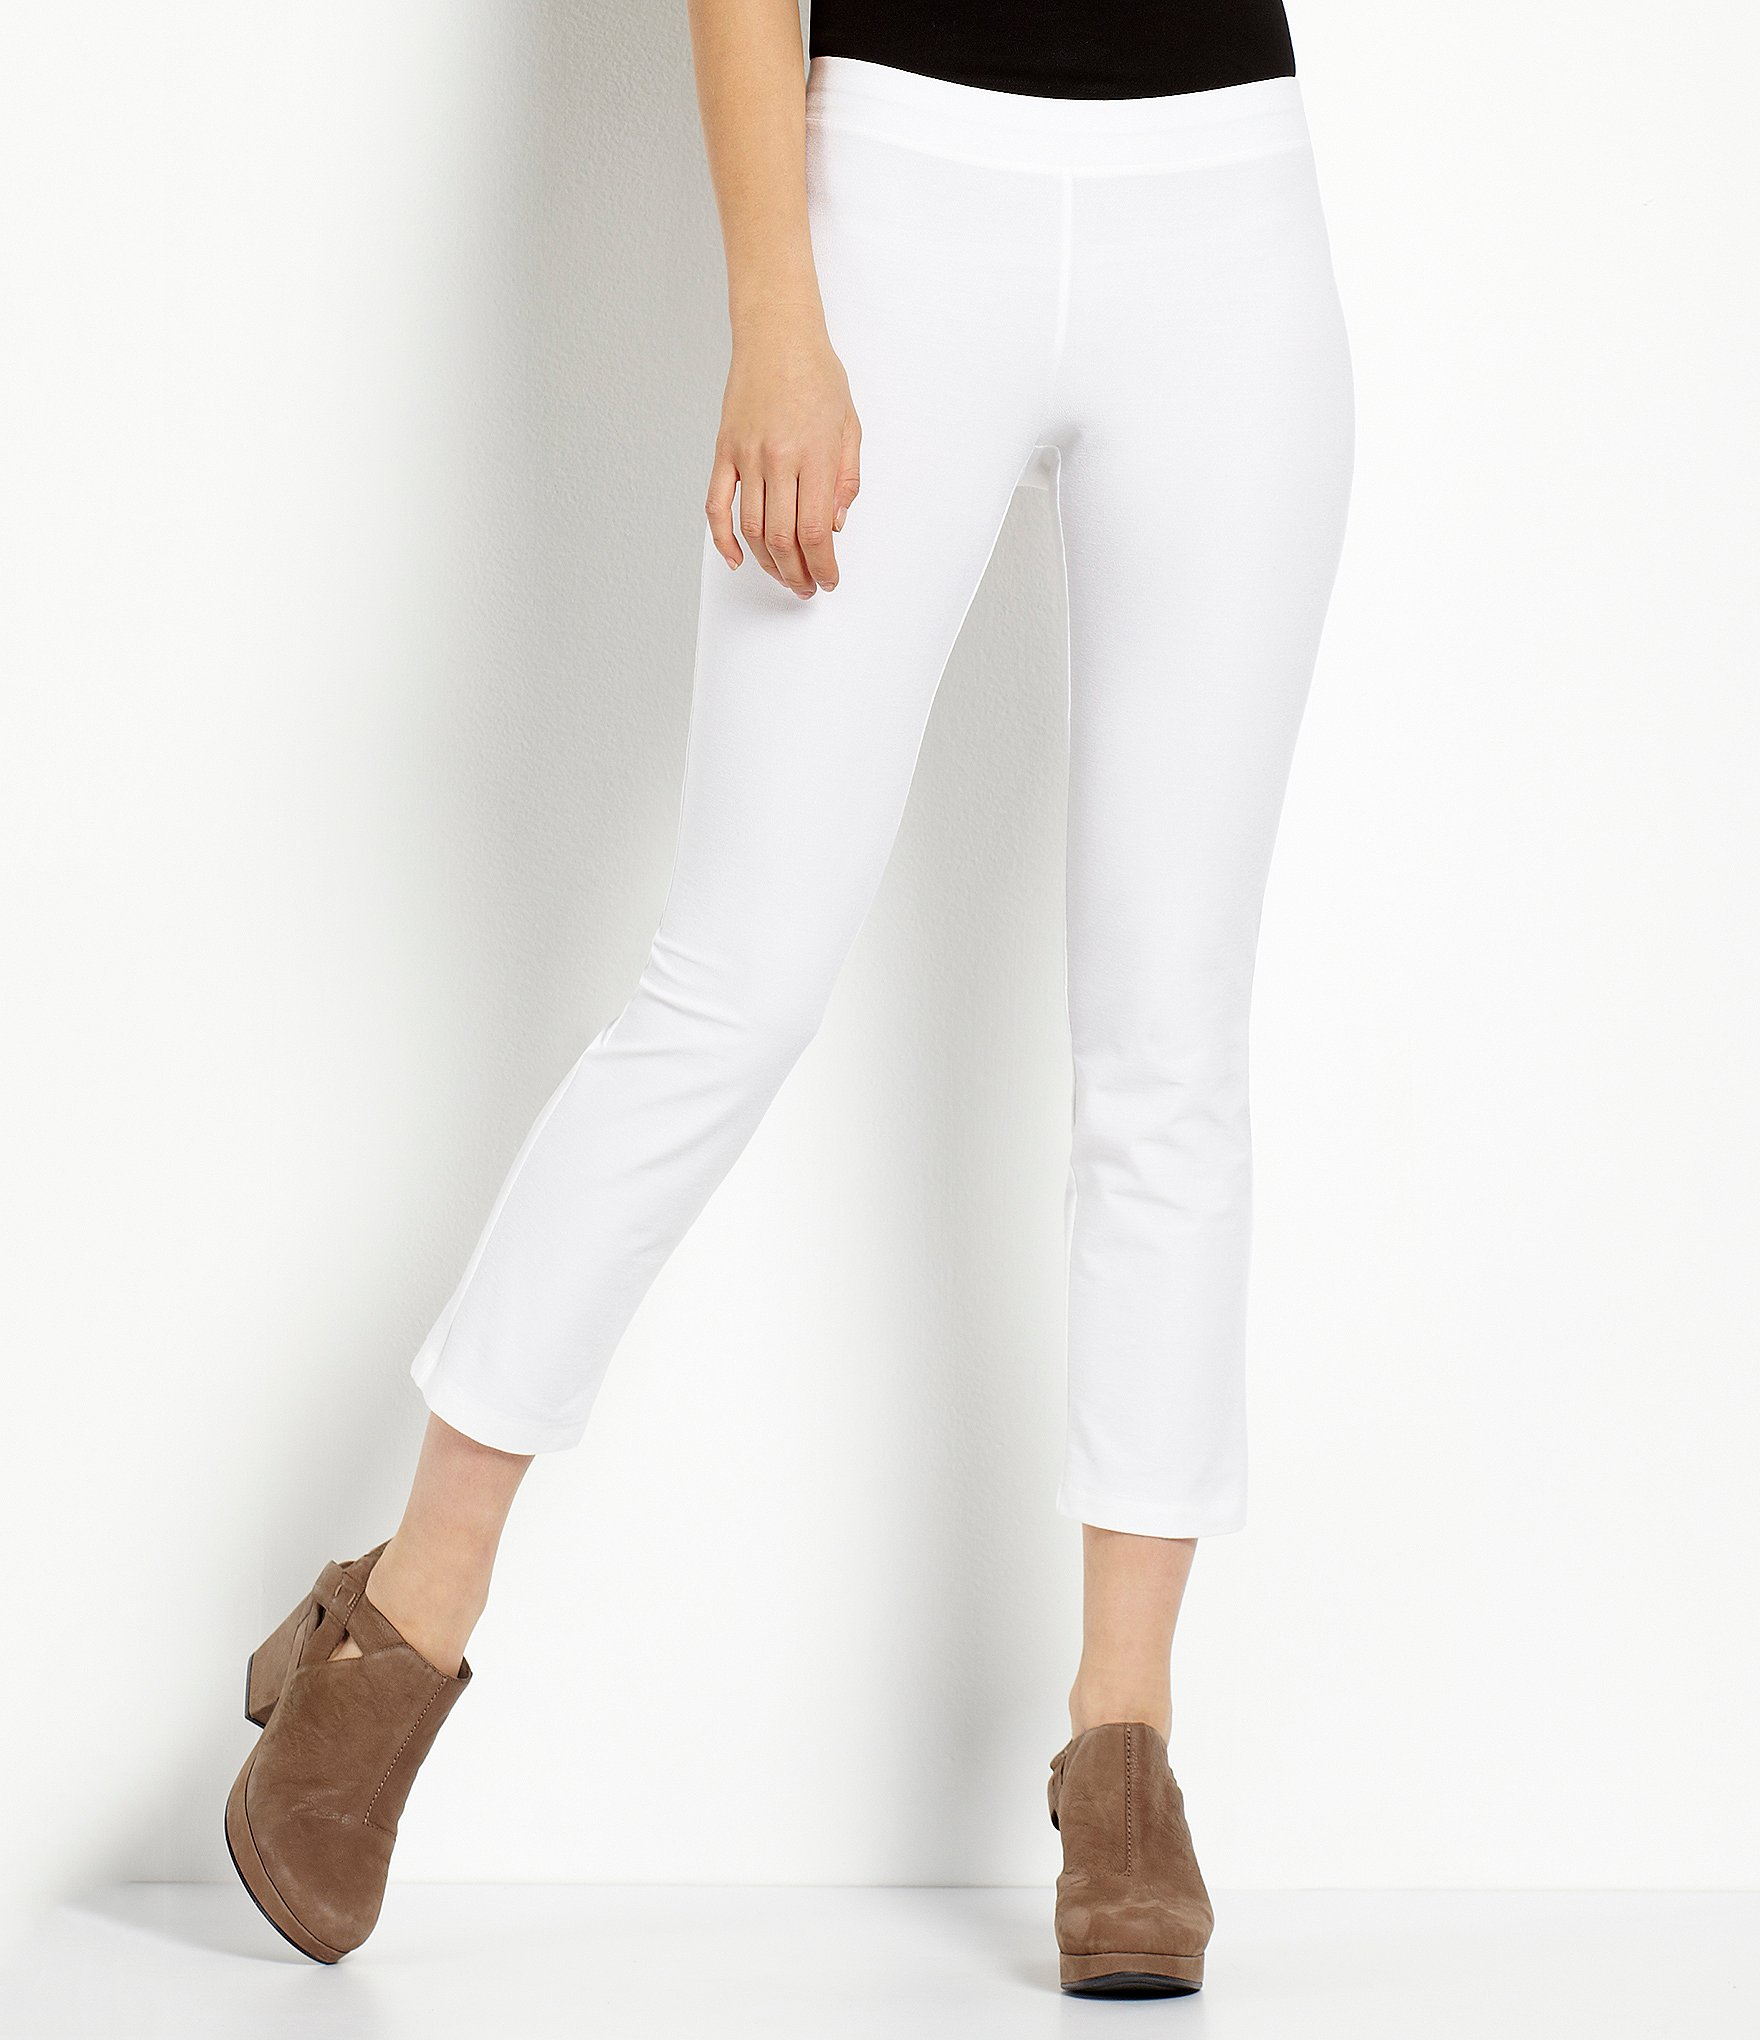 Eileen Fisher Crepe Ankle Pants Dillards